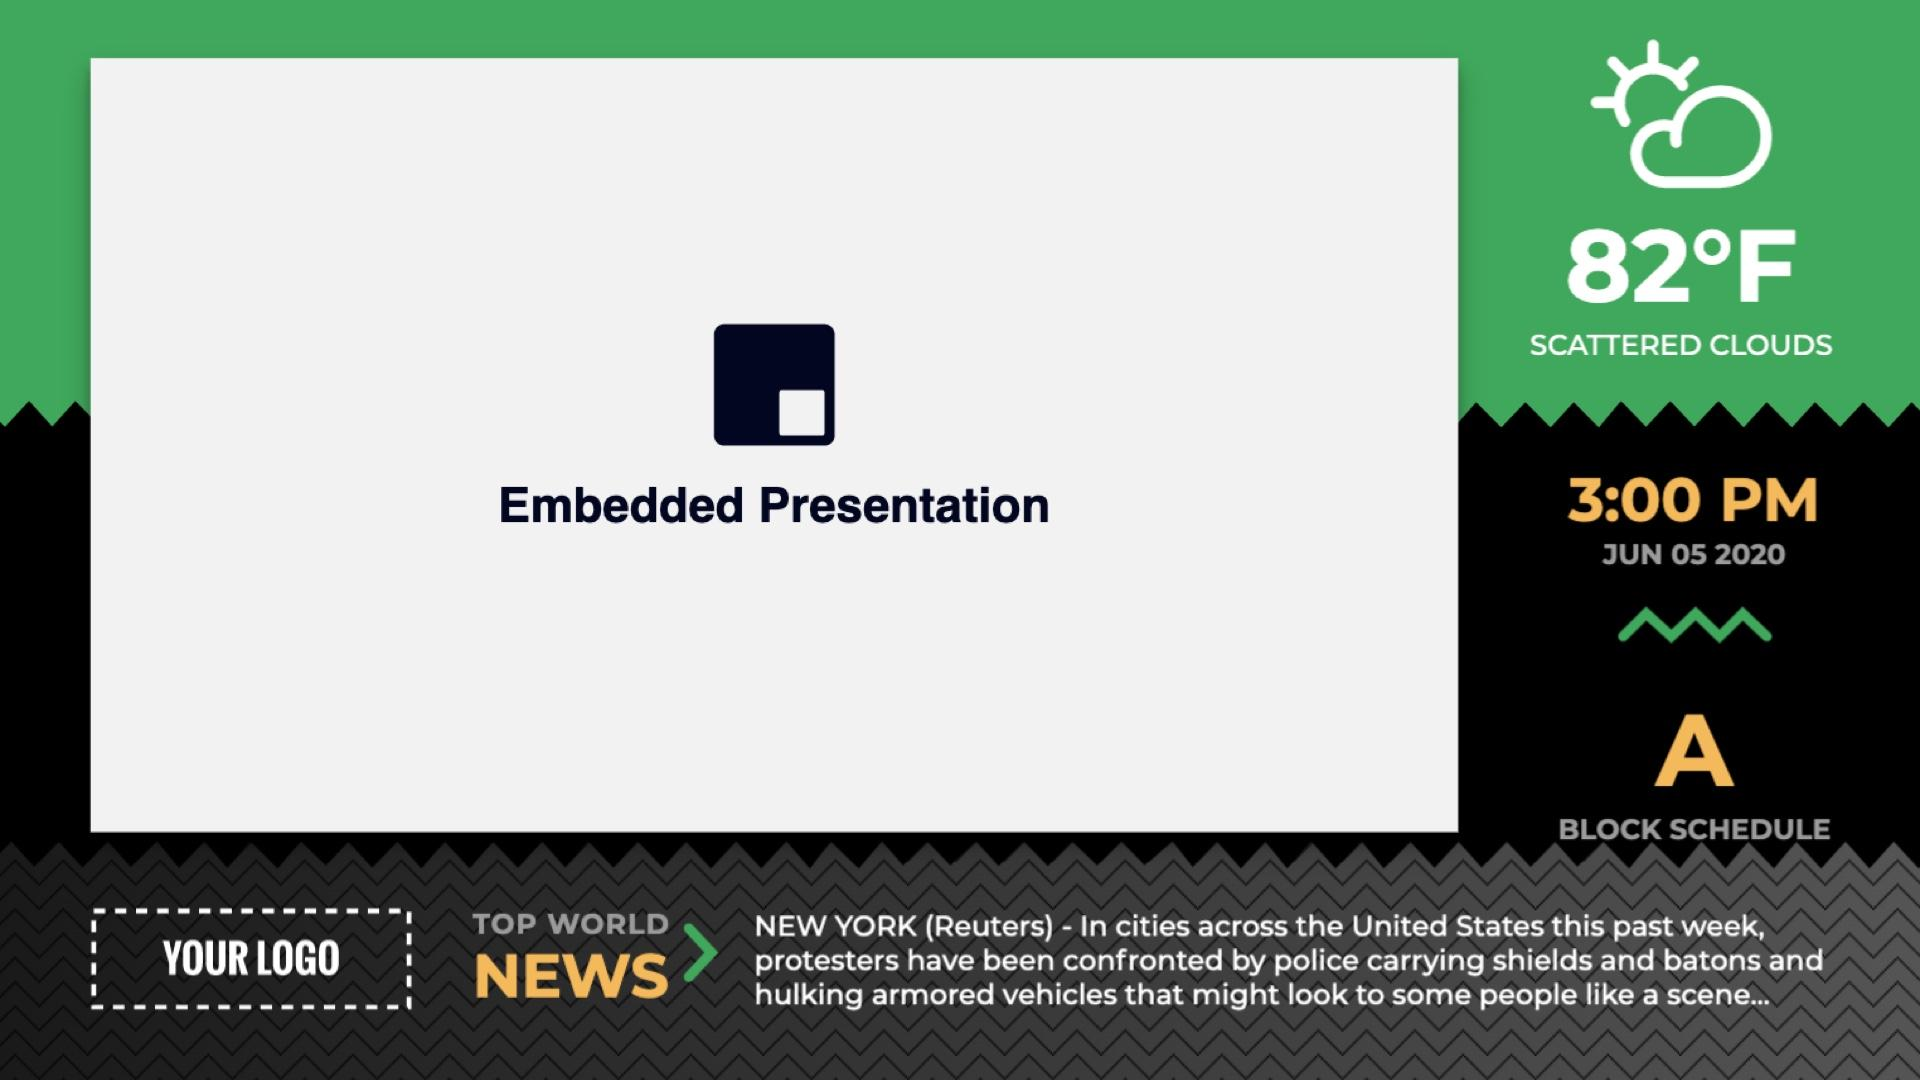 Zoned Sawtooth Embedded Presentation Digital Signage Template